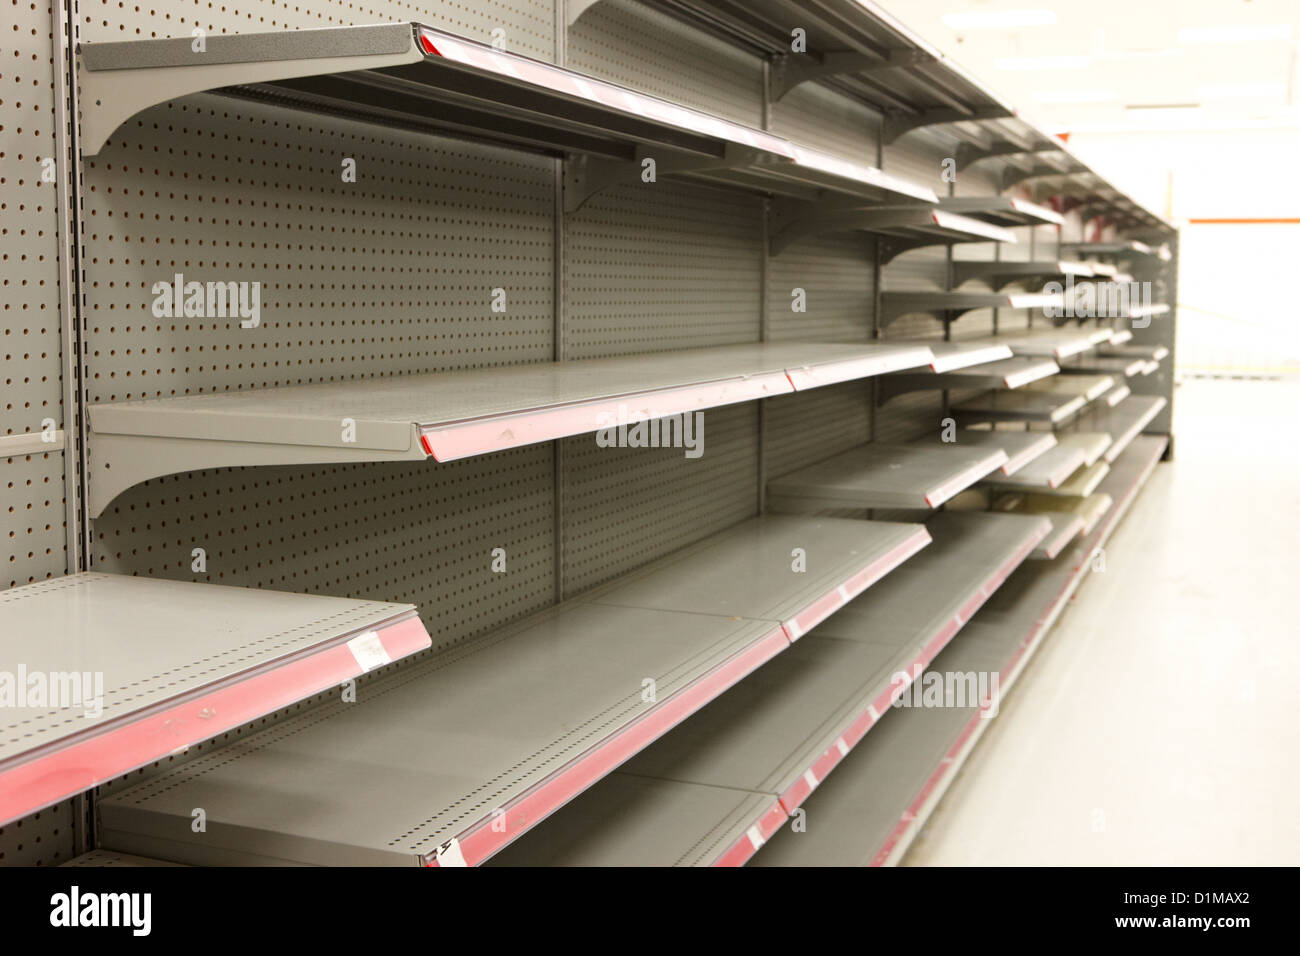 empty shelves in a closing down retail store in Saskatoon saskatchewan canada. a closing down sale by the retailer - Stock Image